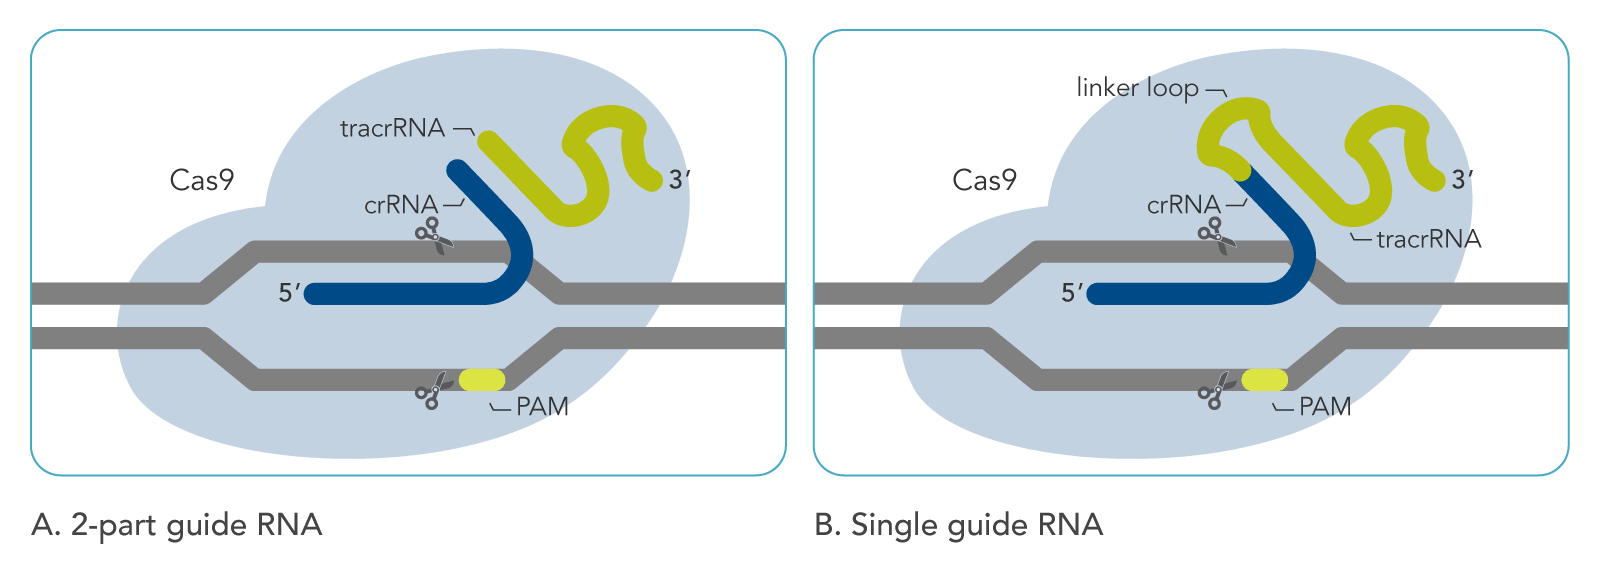 Comparison of synthetic tracrRNA:crRNA and sgRNA